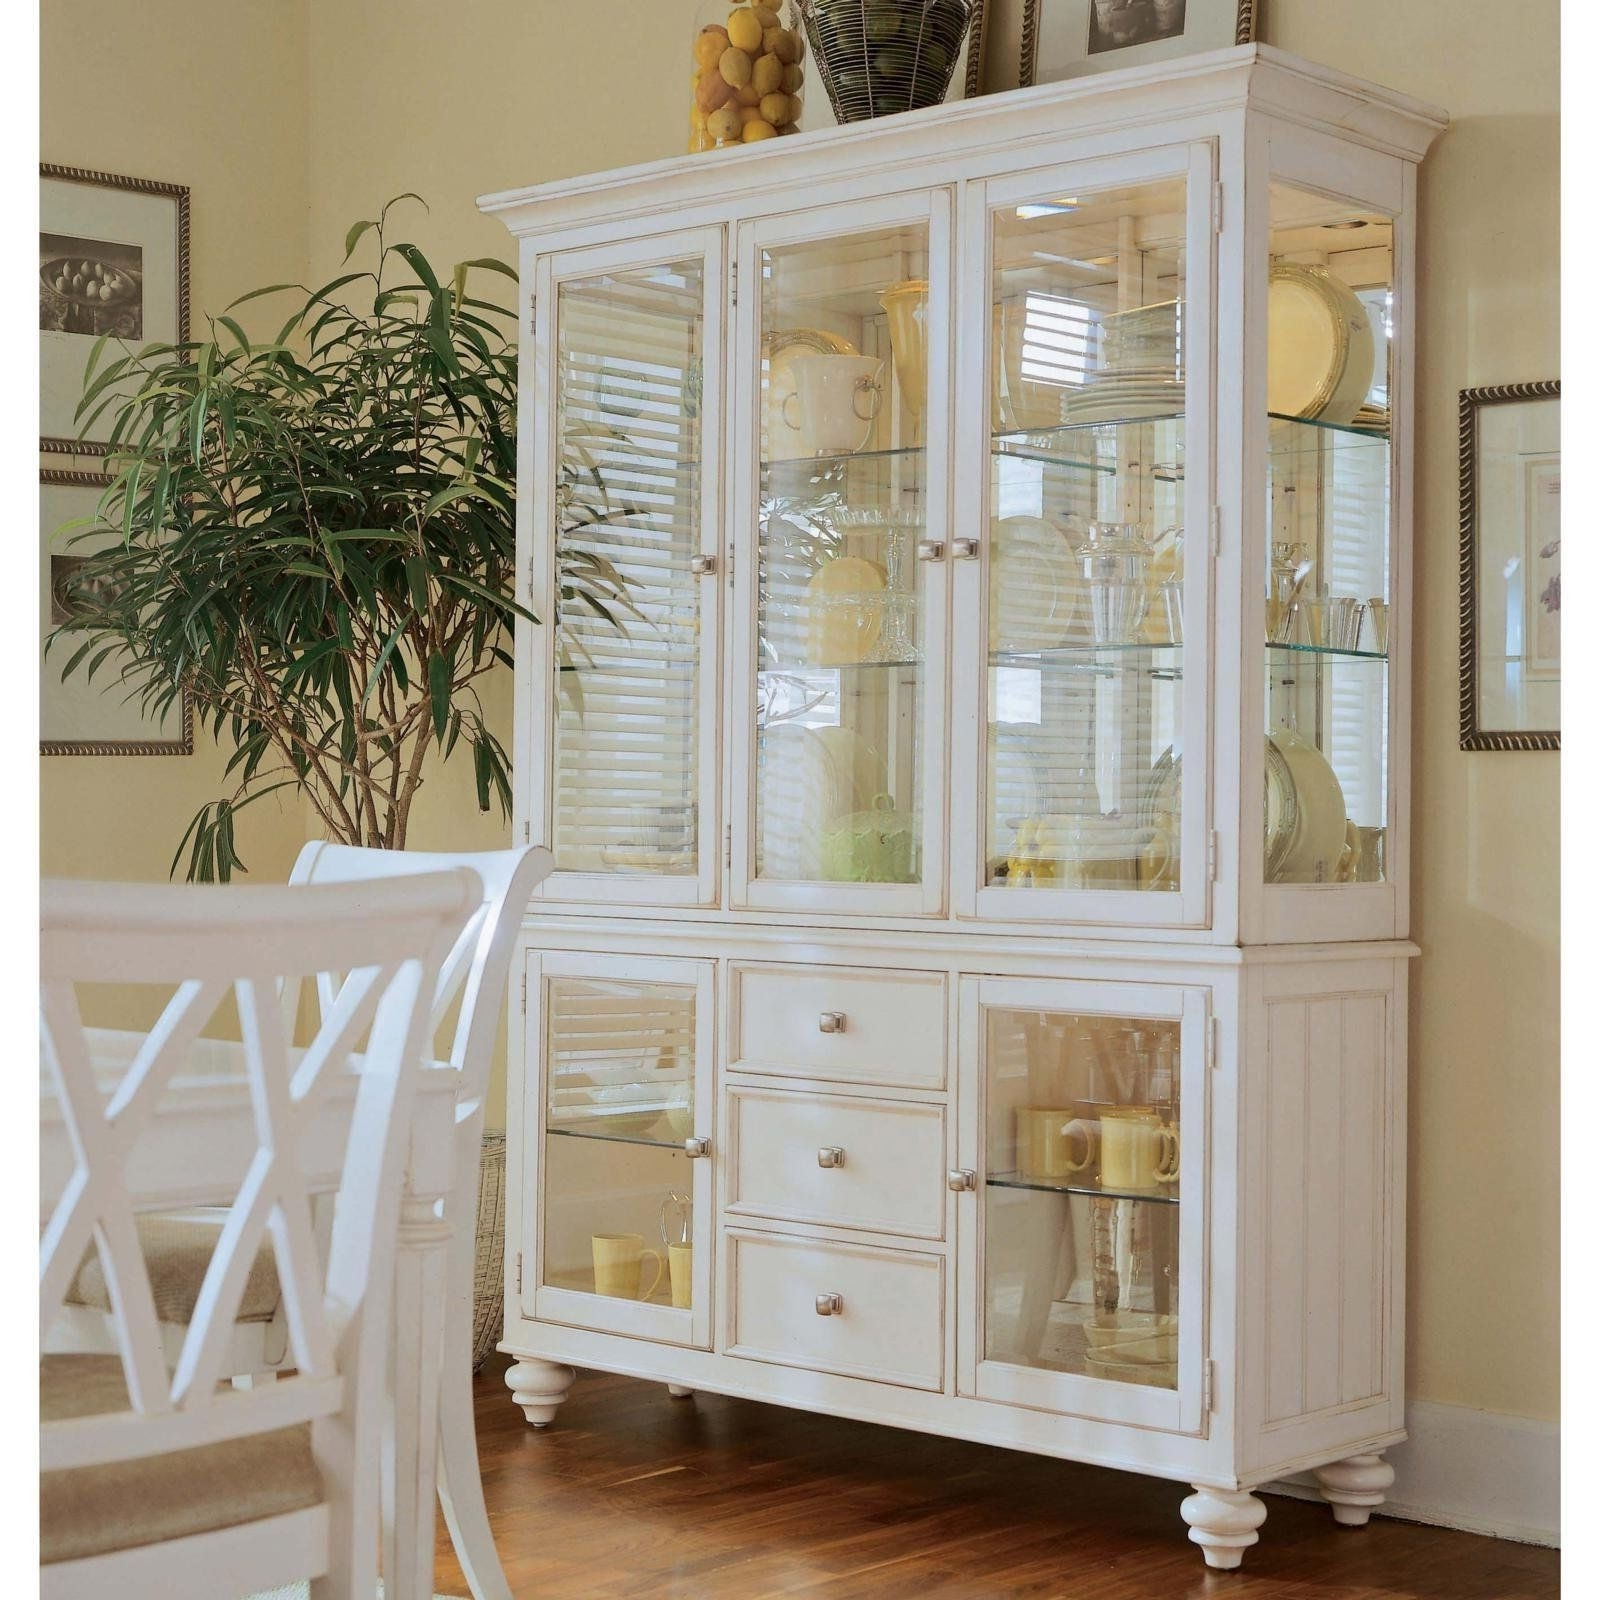 Dining Room Cabinets with Fashionable Guide To Choose Suitable Dining Room Cabinets For Your Home - Dining